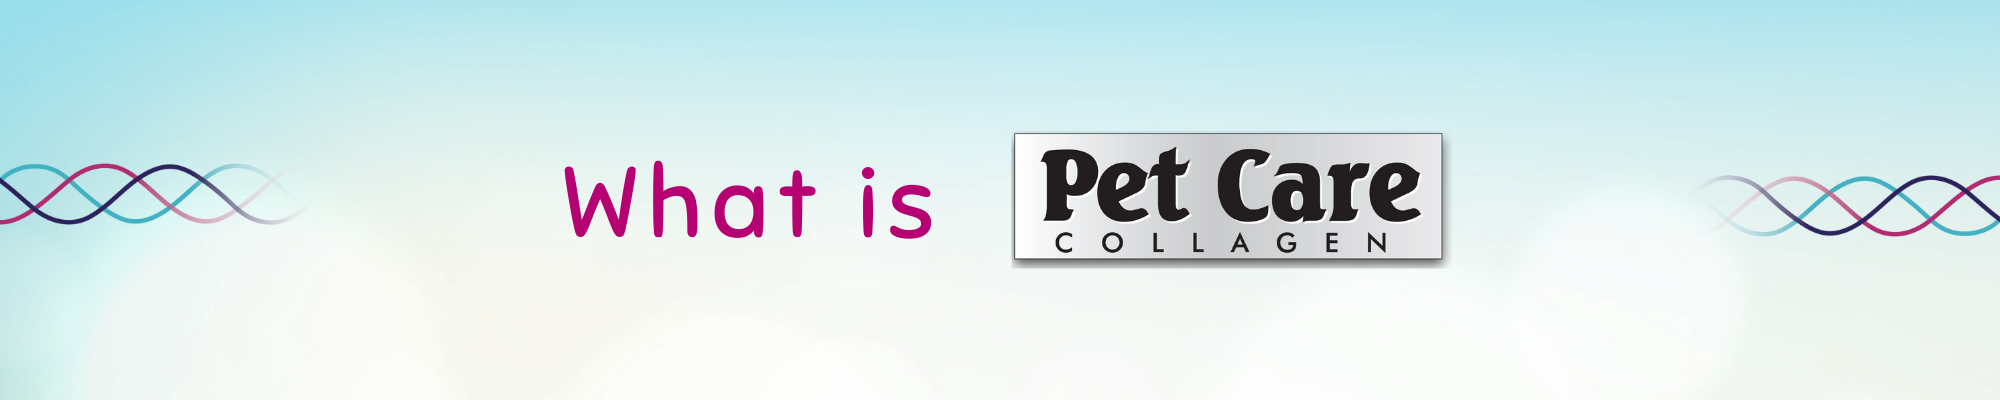 What is Pet care